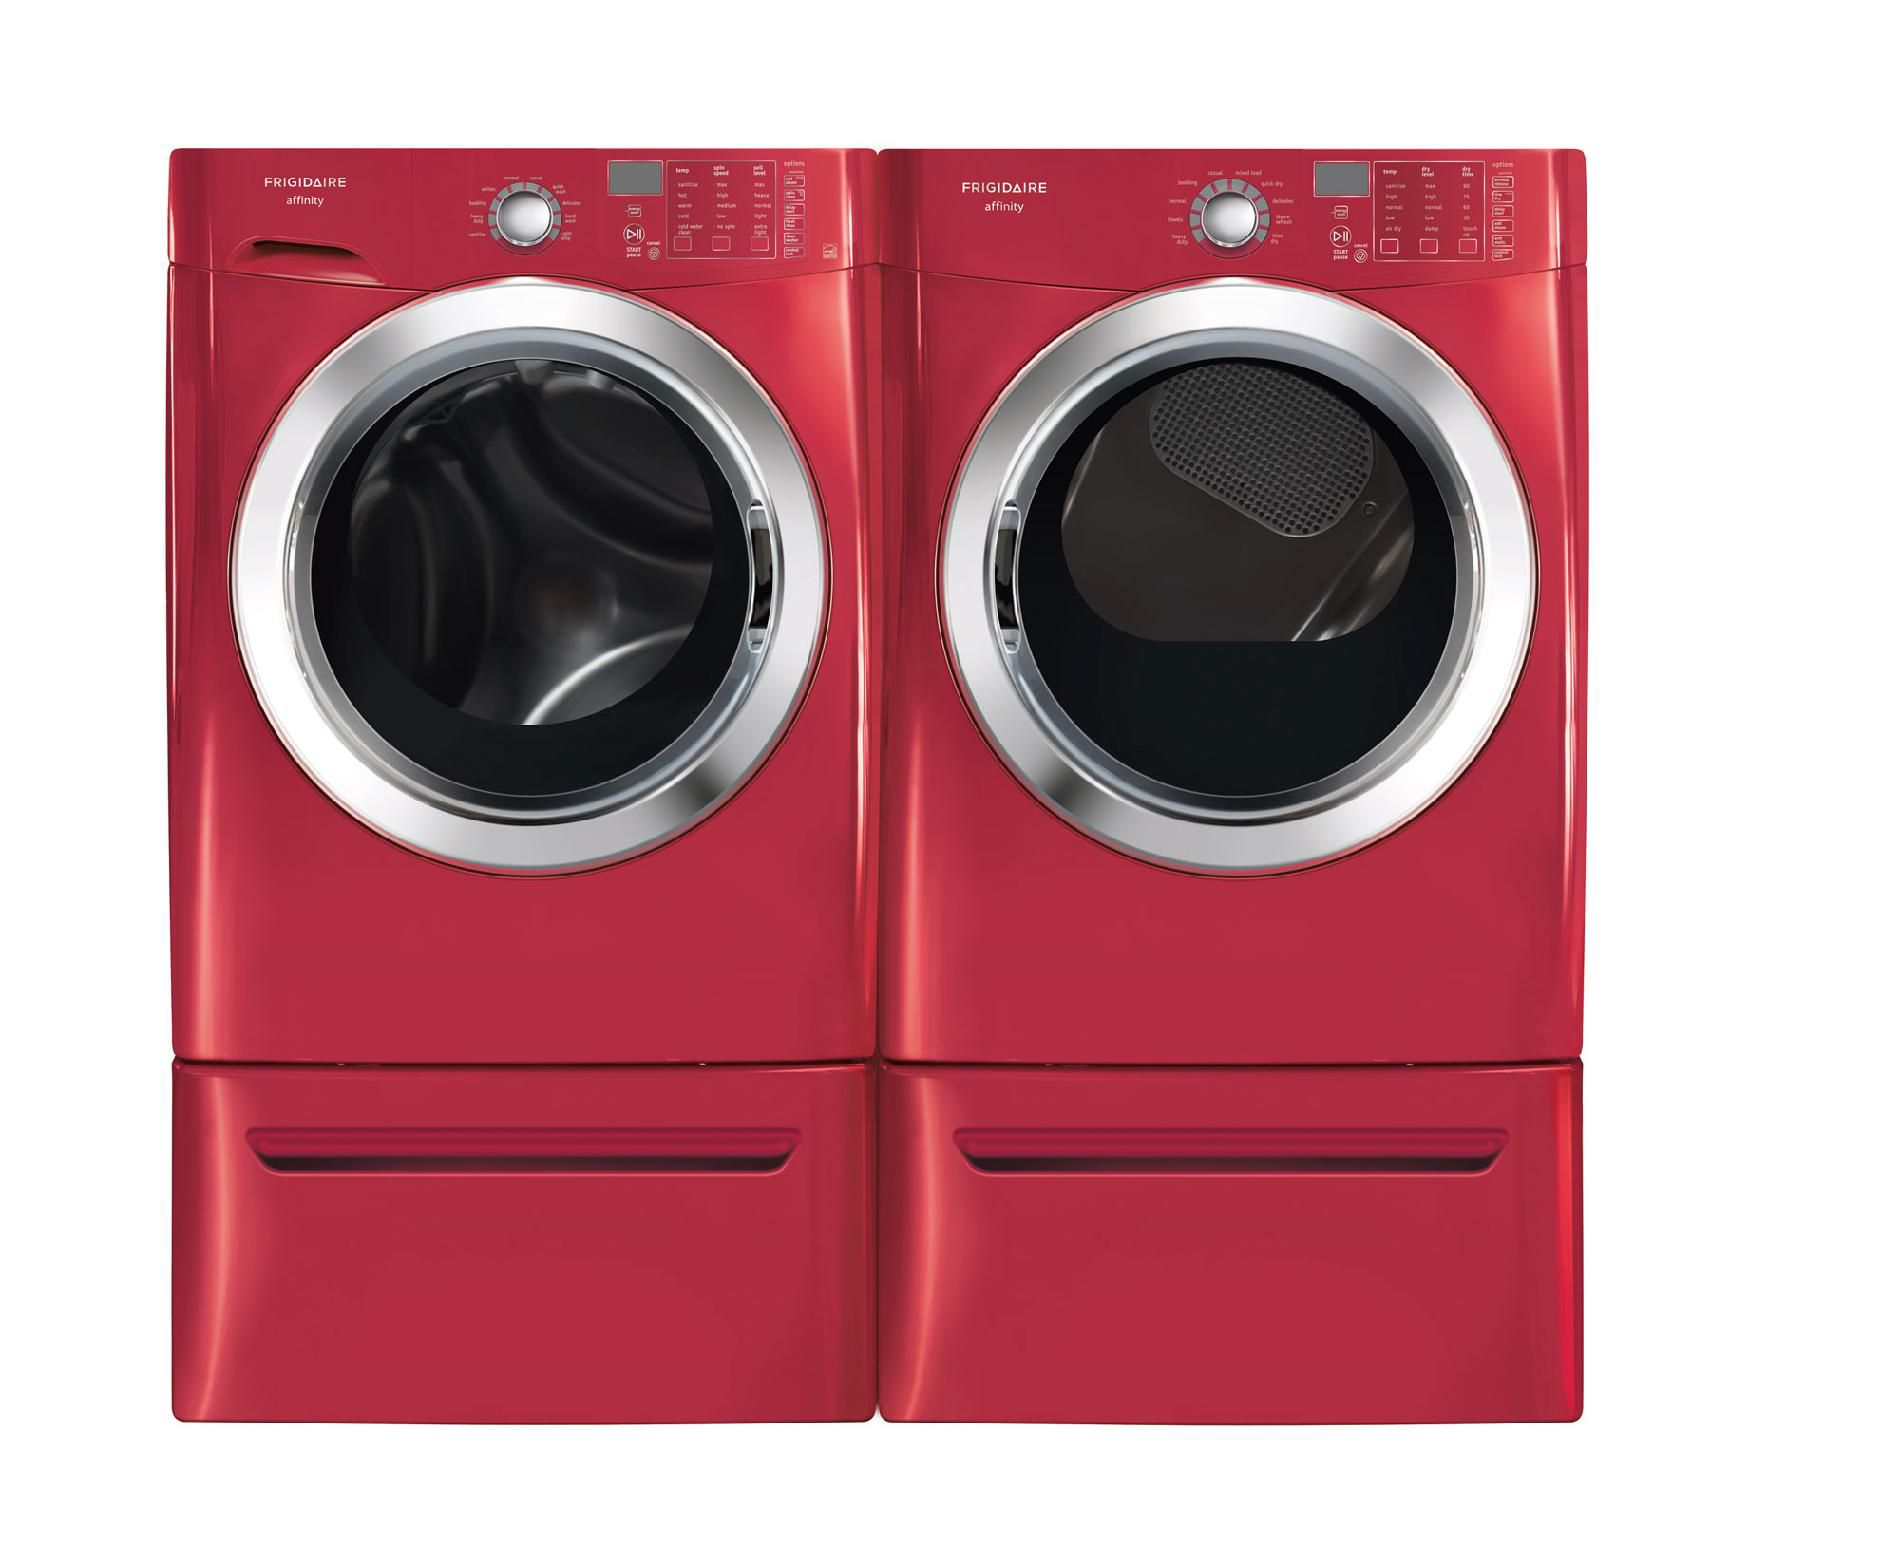 Frigidaire 7.0 cu. ft. Ready Steam™ Electric Dryer w/ Stainless Steel Drum - Classic Red